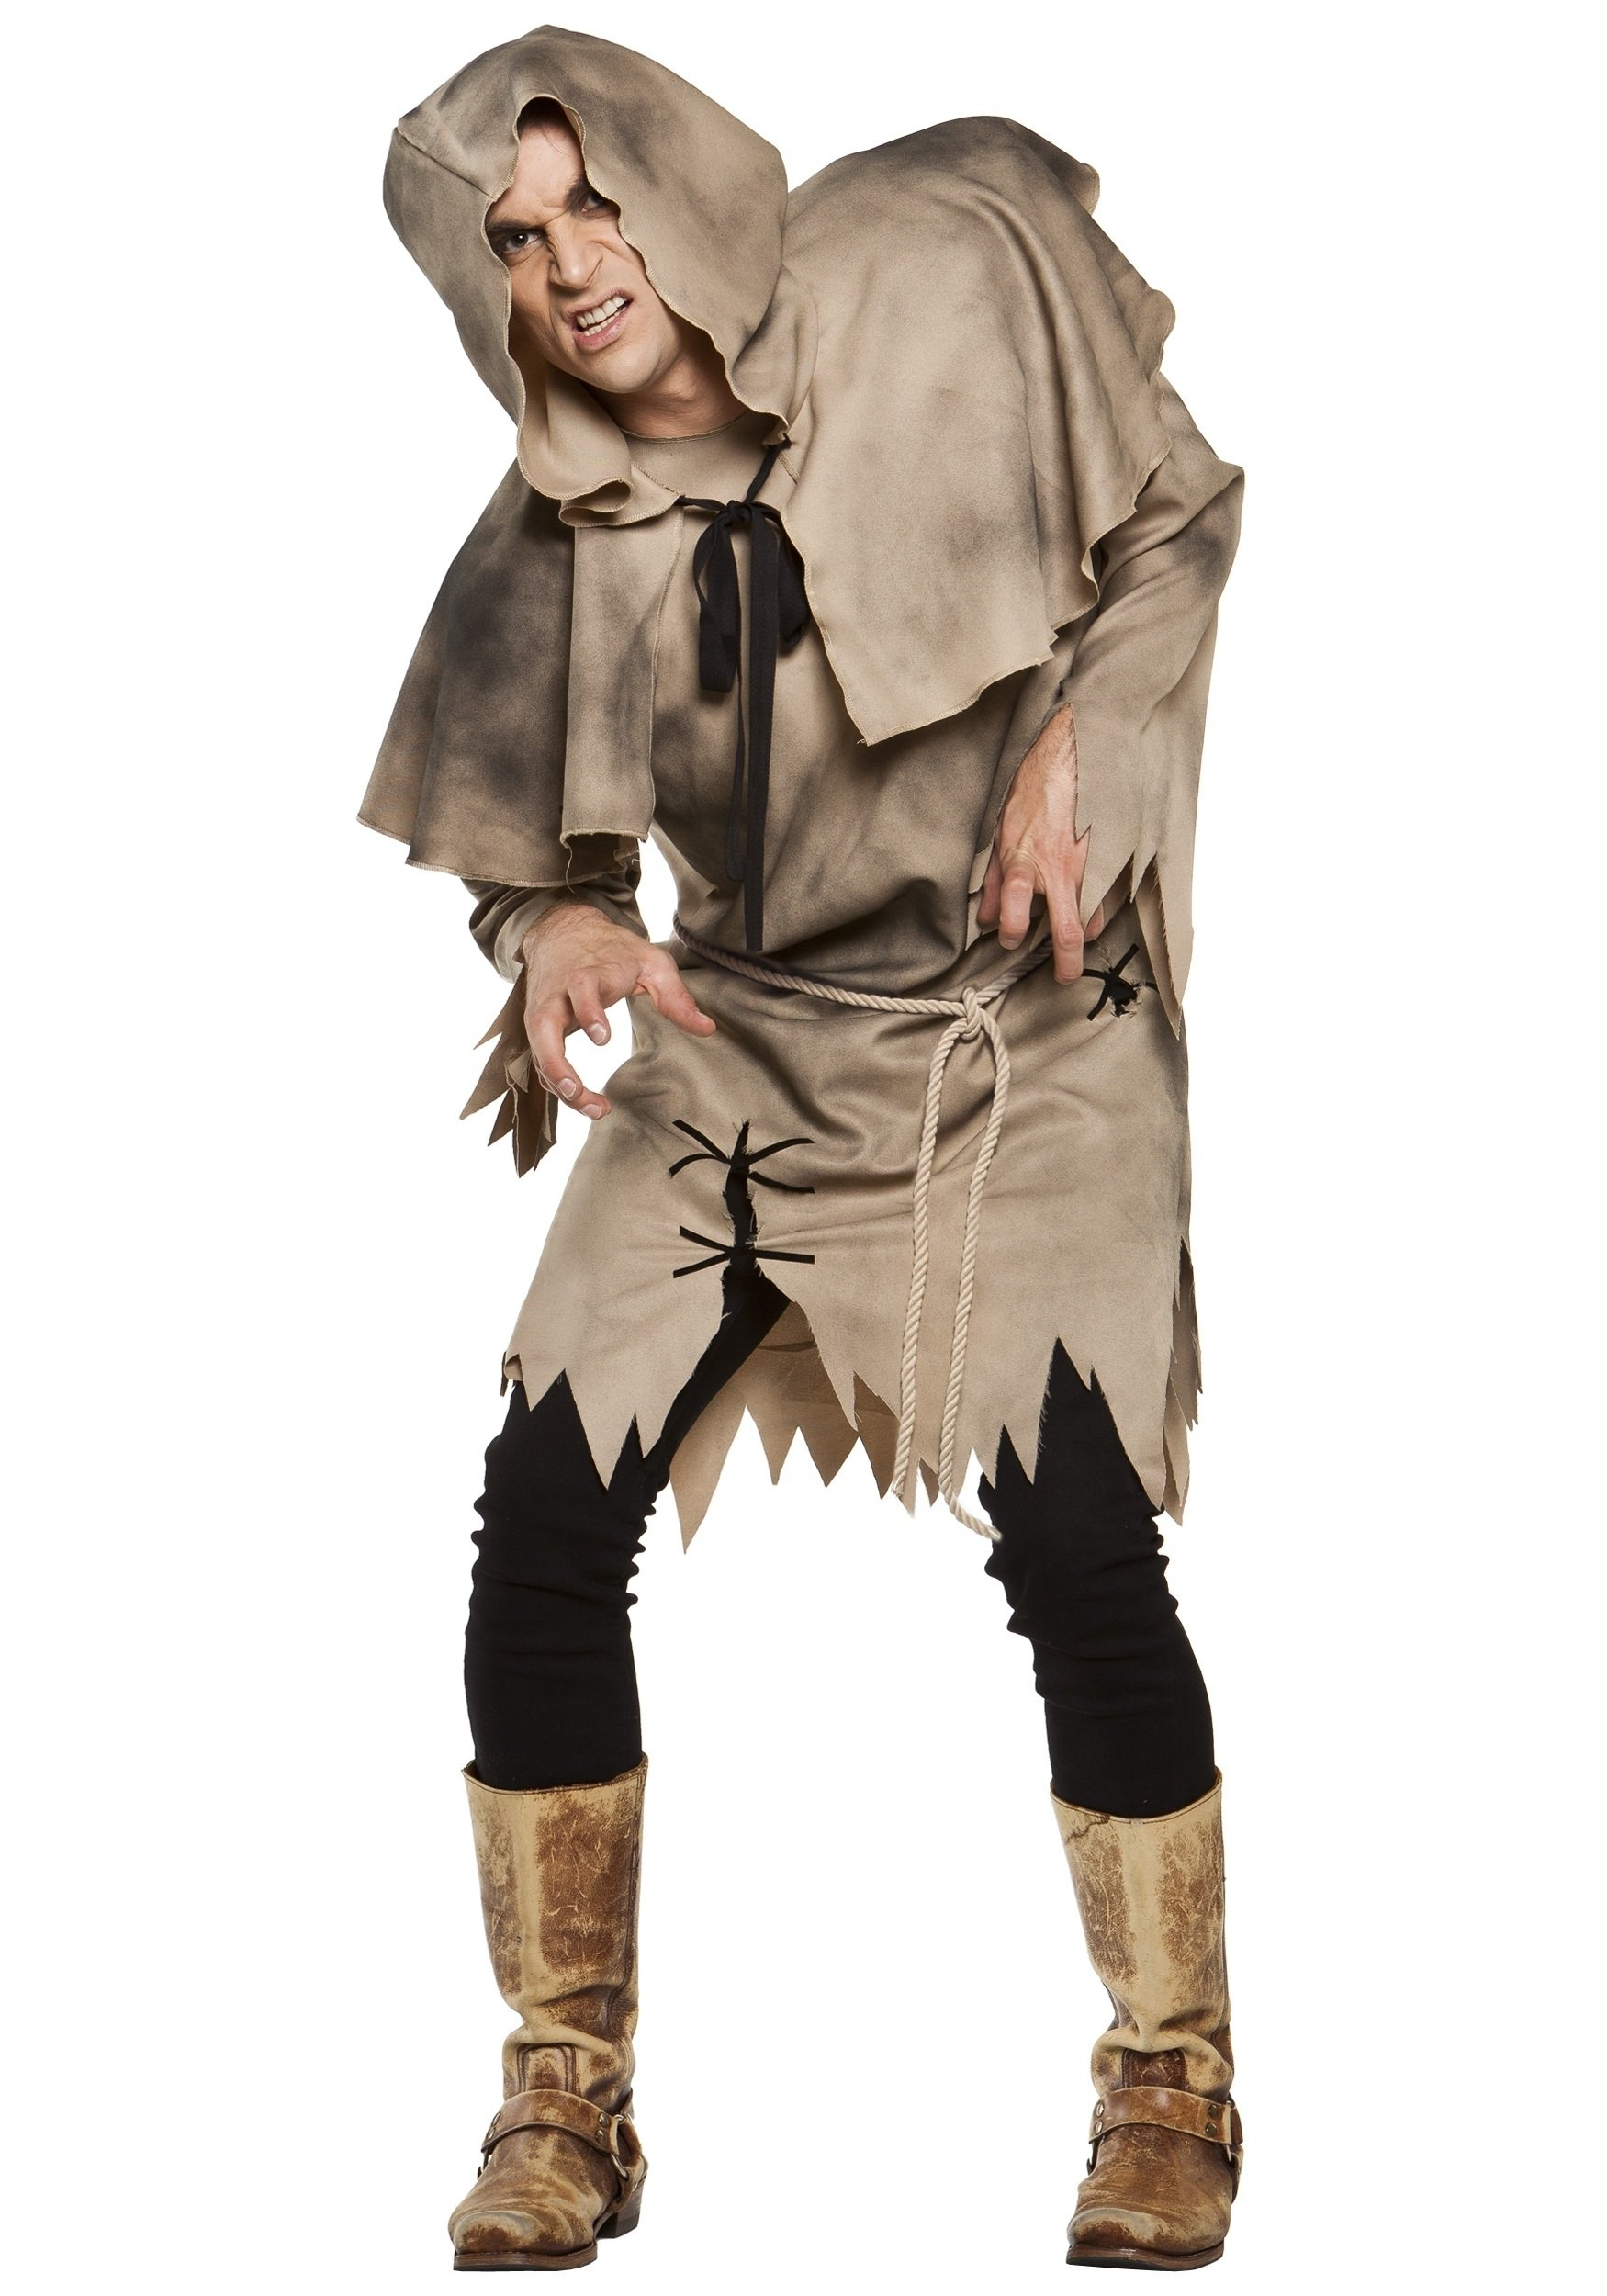 10 Ideal Scary Costume Ideas For Men hunchback of notre dame costume scary costume ideas for men 2020